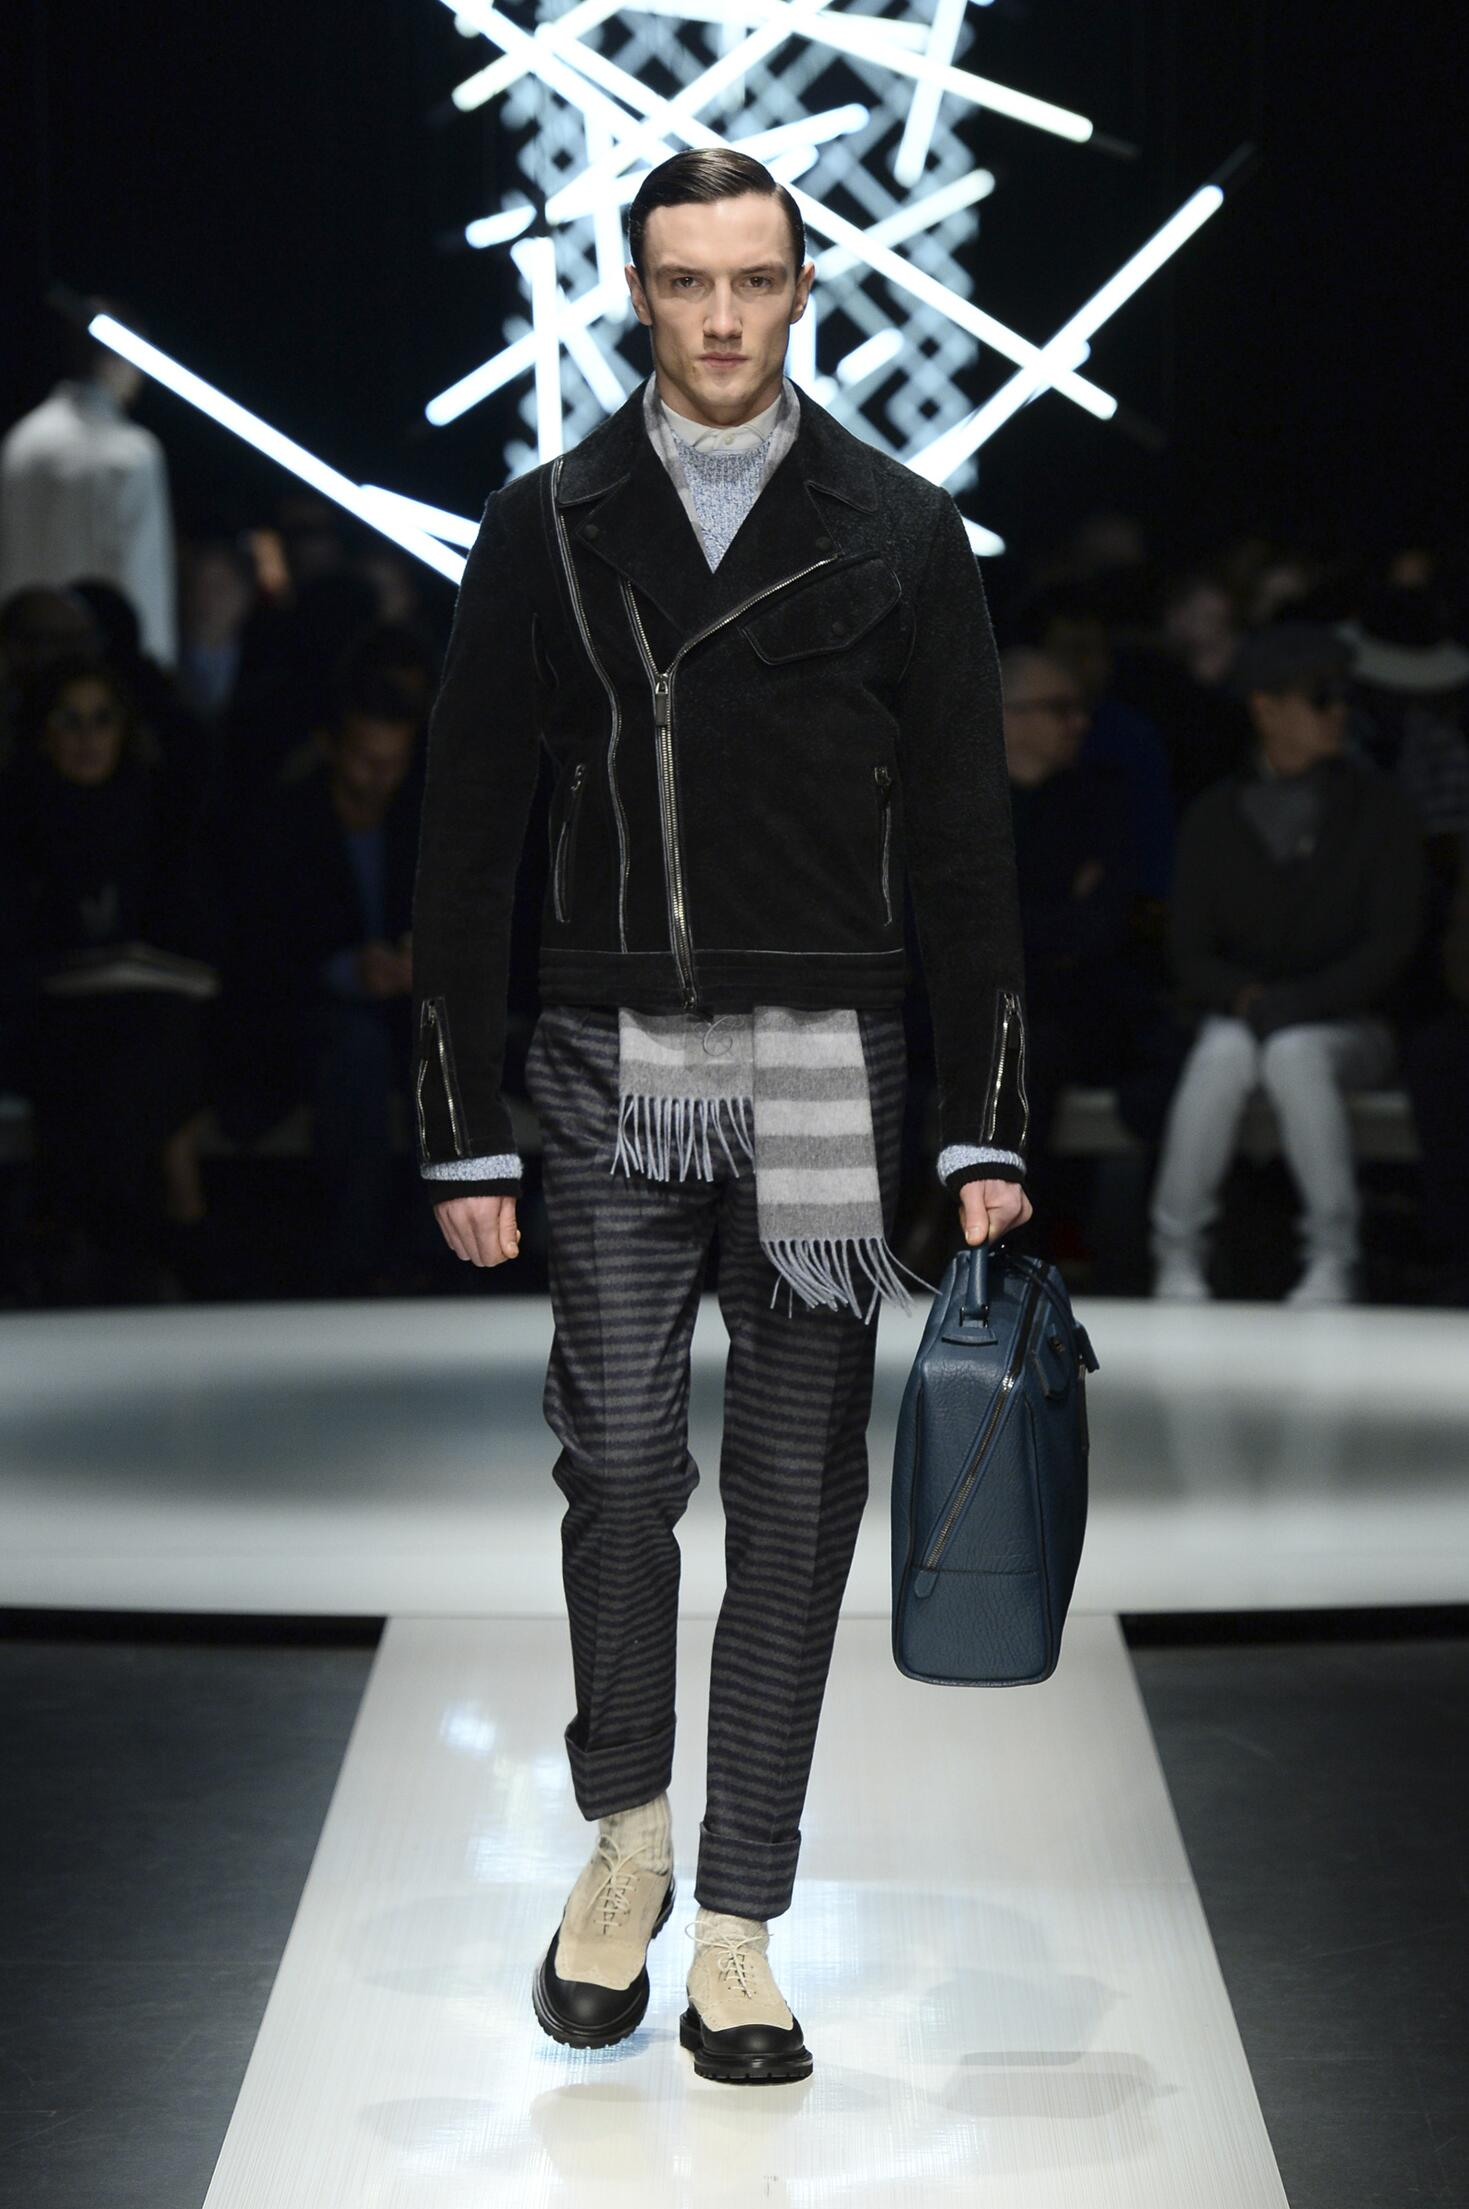 Catwalk Canali Fall Winter 2015 16 Men's Collection Milano Fashion Week